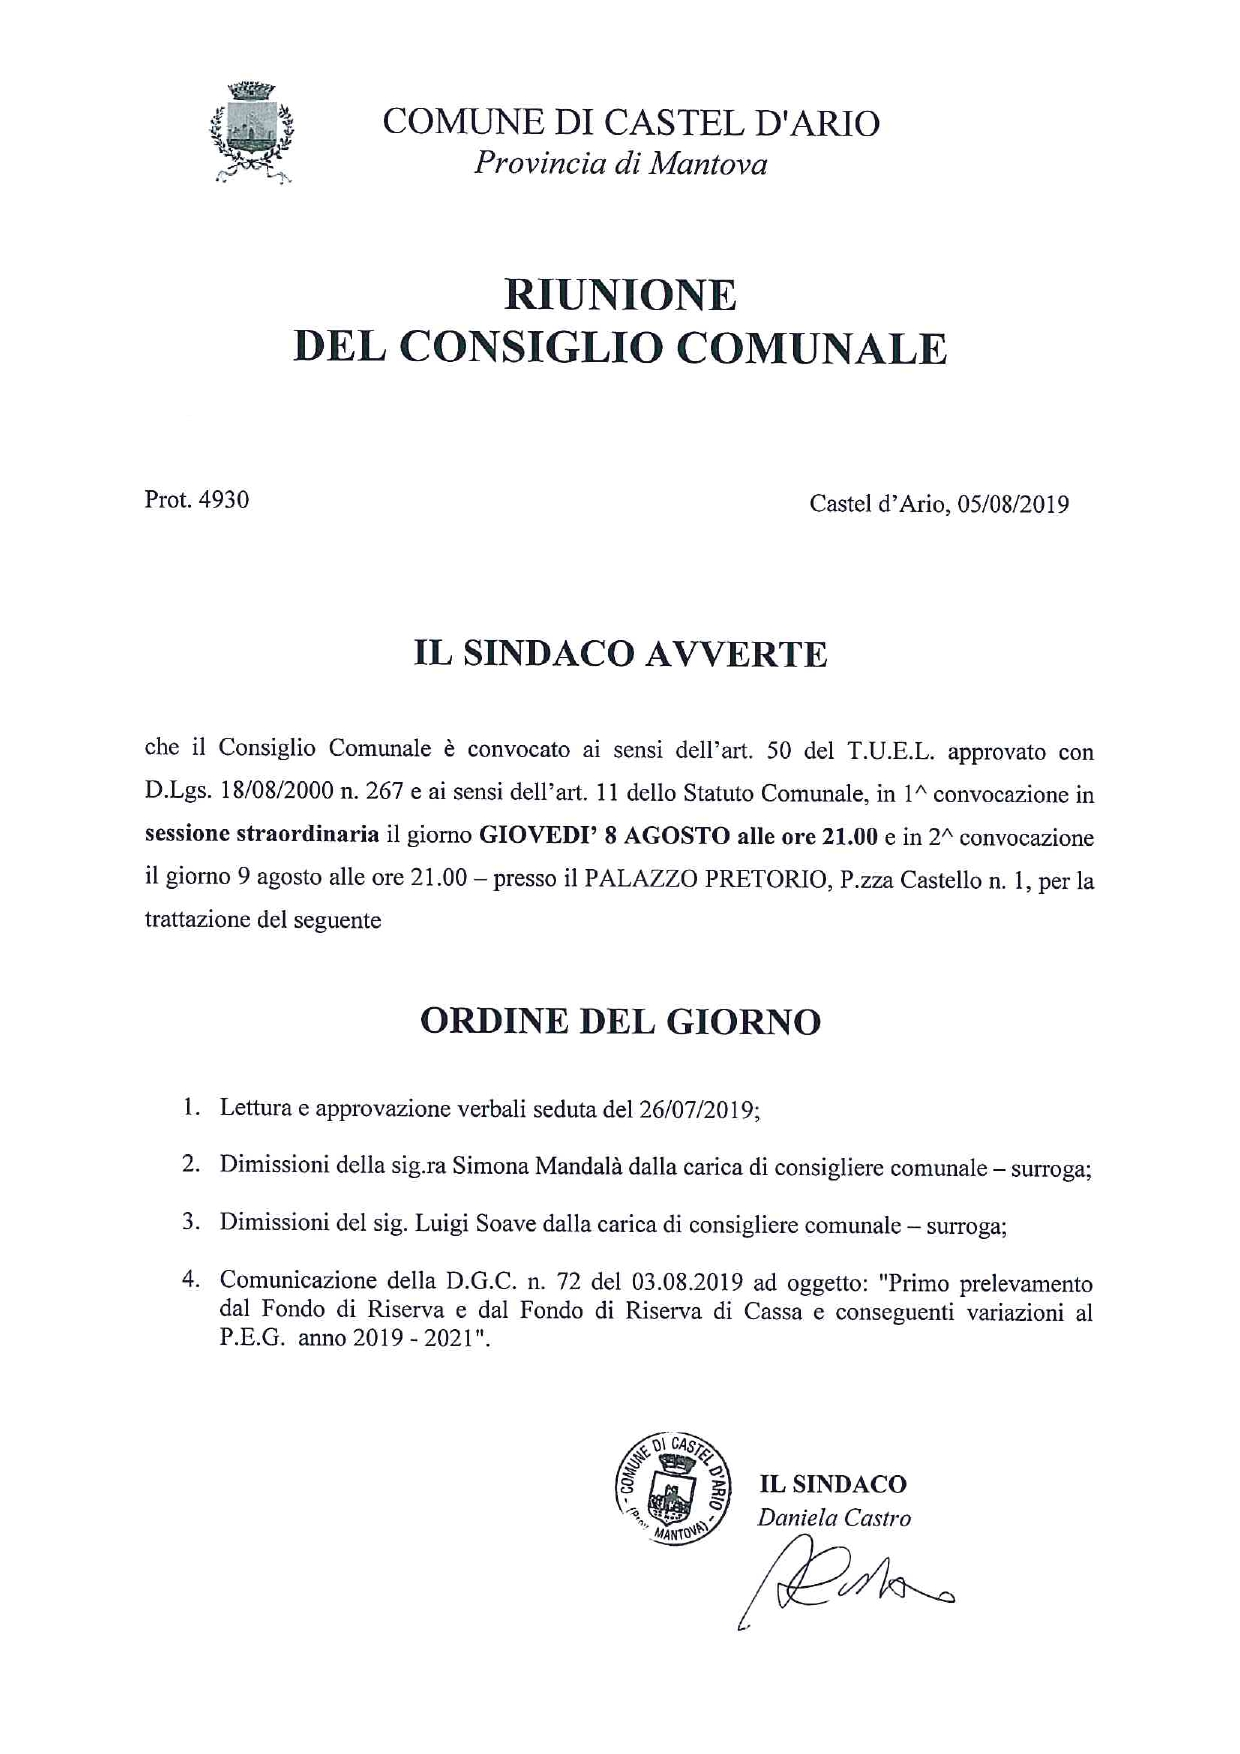 CONSIGLIO13305020190805113613 page 0001